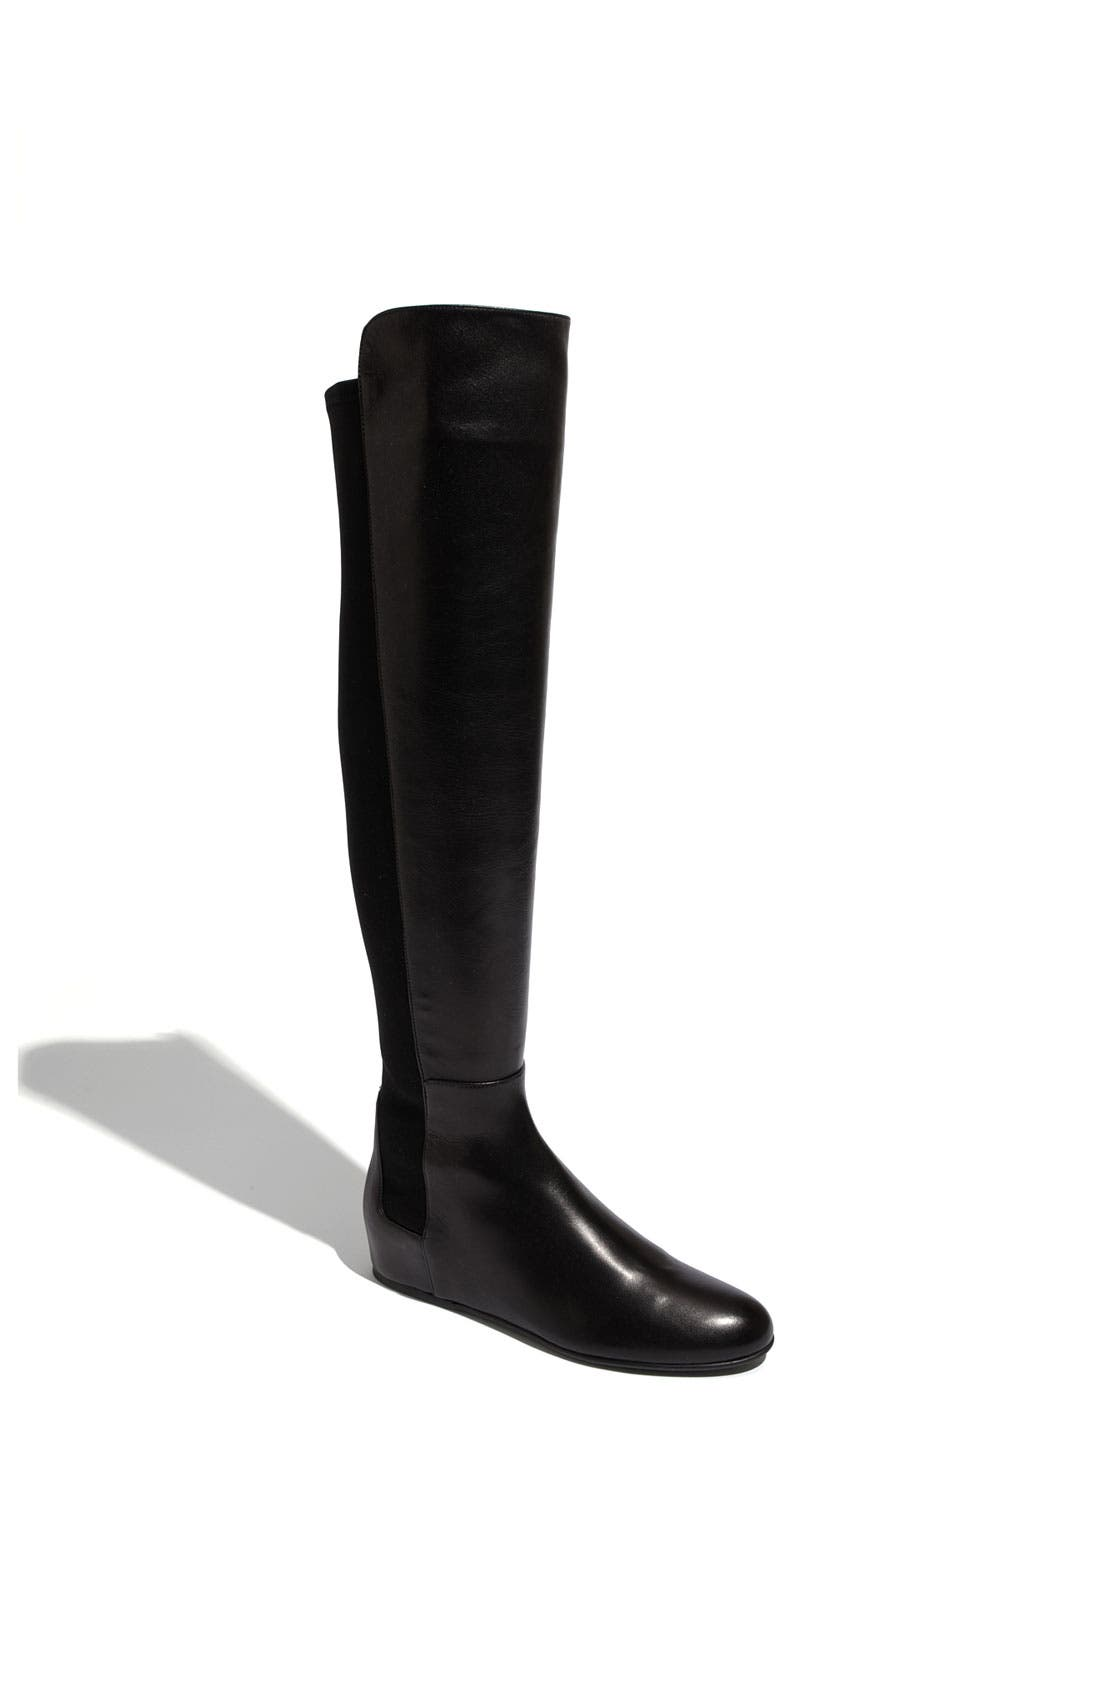 STUART WEITZMAN, 'Mainline' Stretch Fabric & Nappa Leather Over the Knee Boot, Main thumbnail 1, color, 002